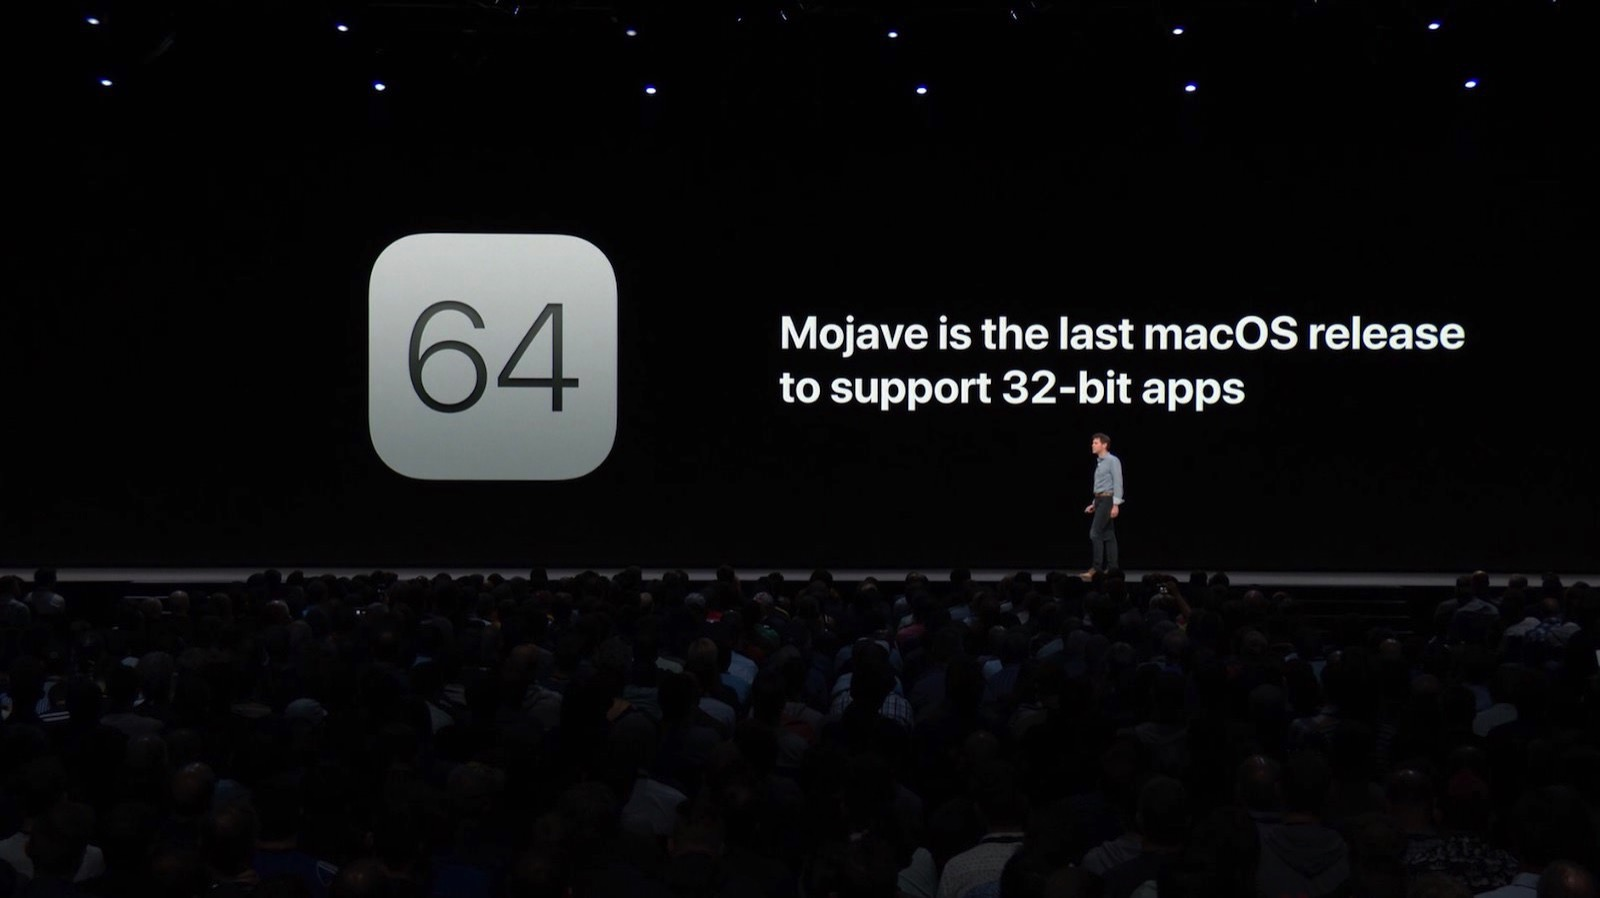 Macos Mojave last os to support 32bit apps